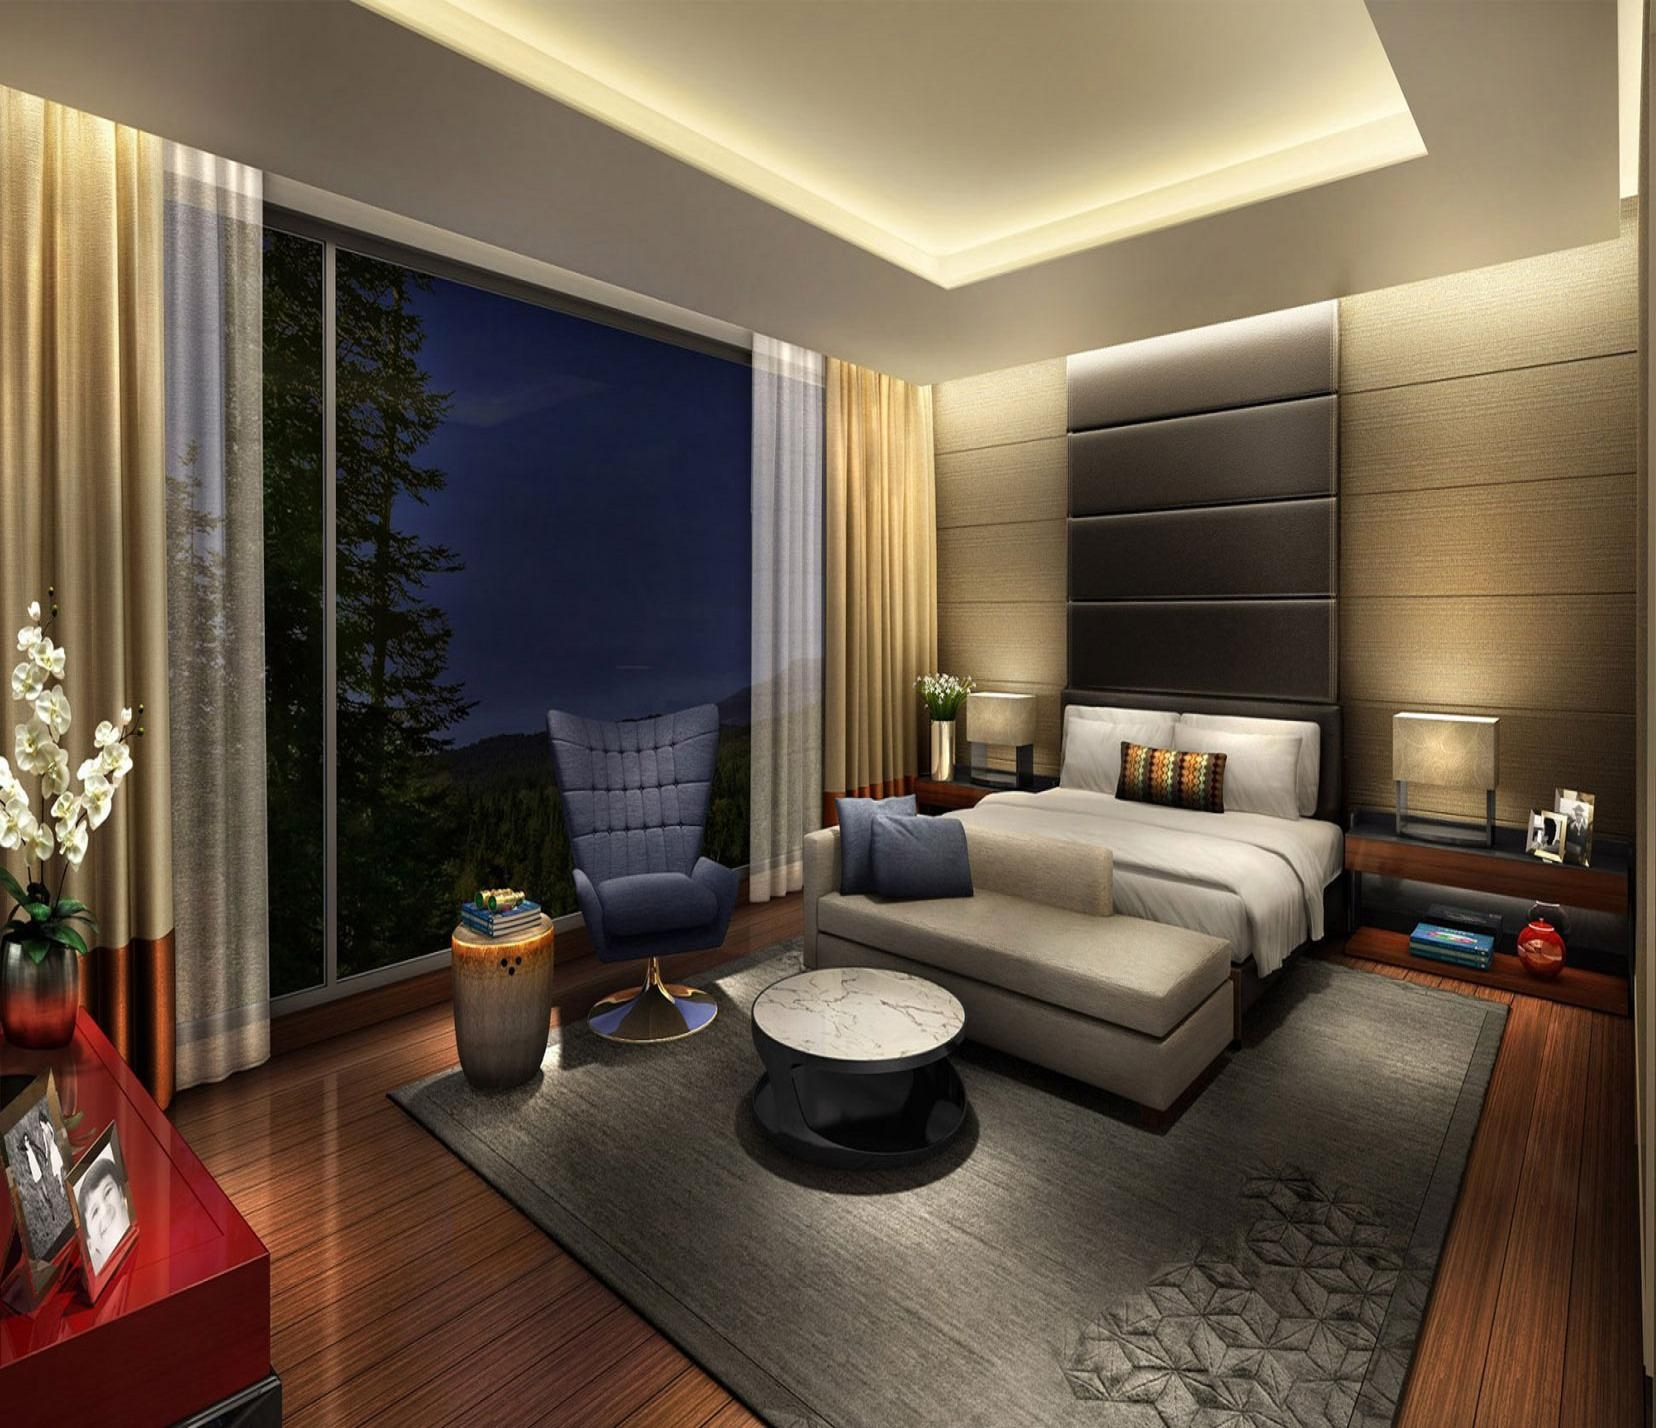 resaiki is one of the leading interior design company based in